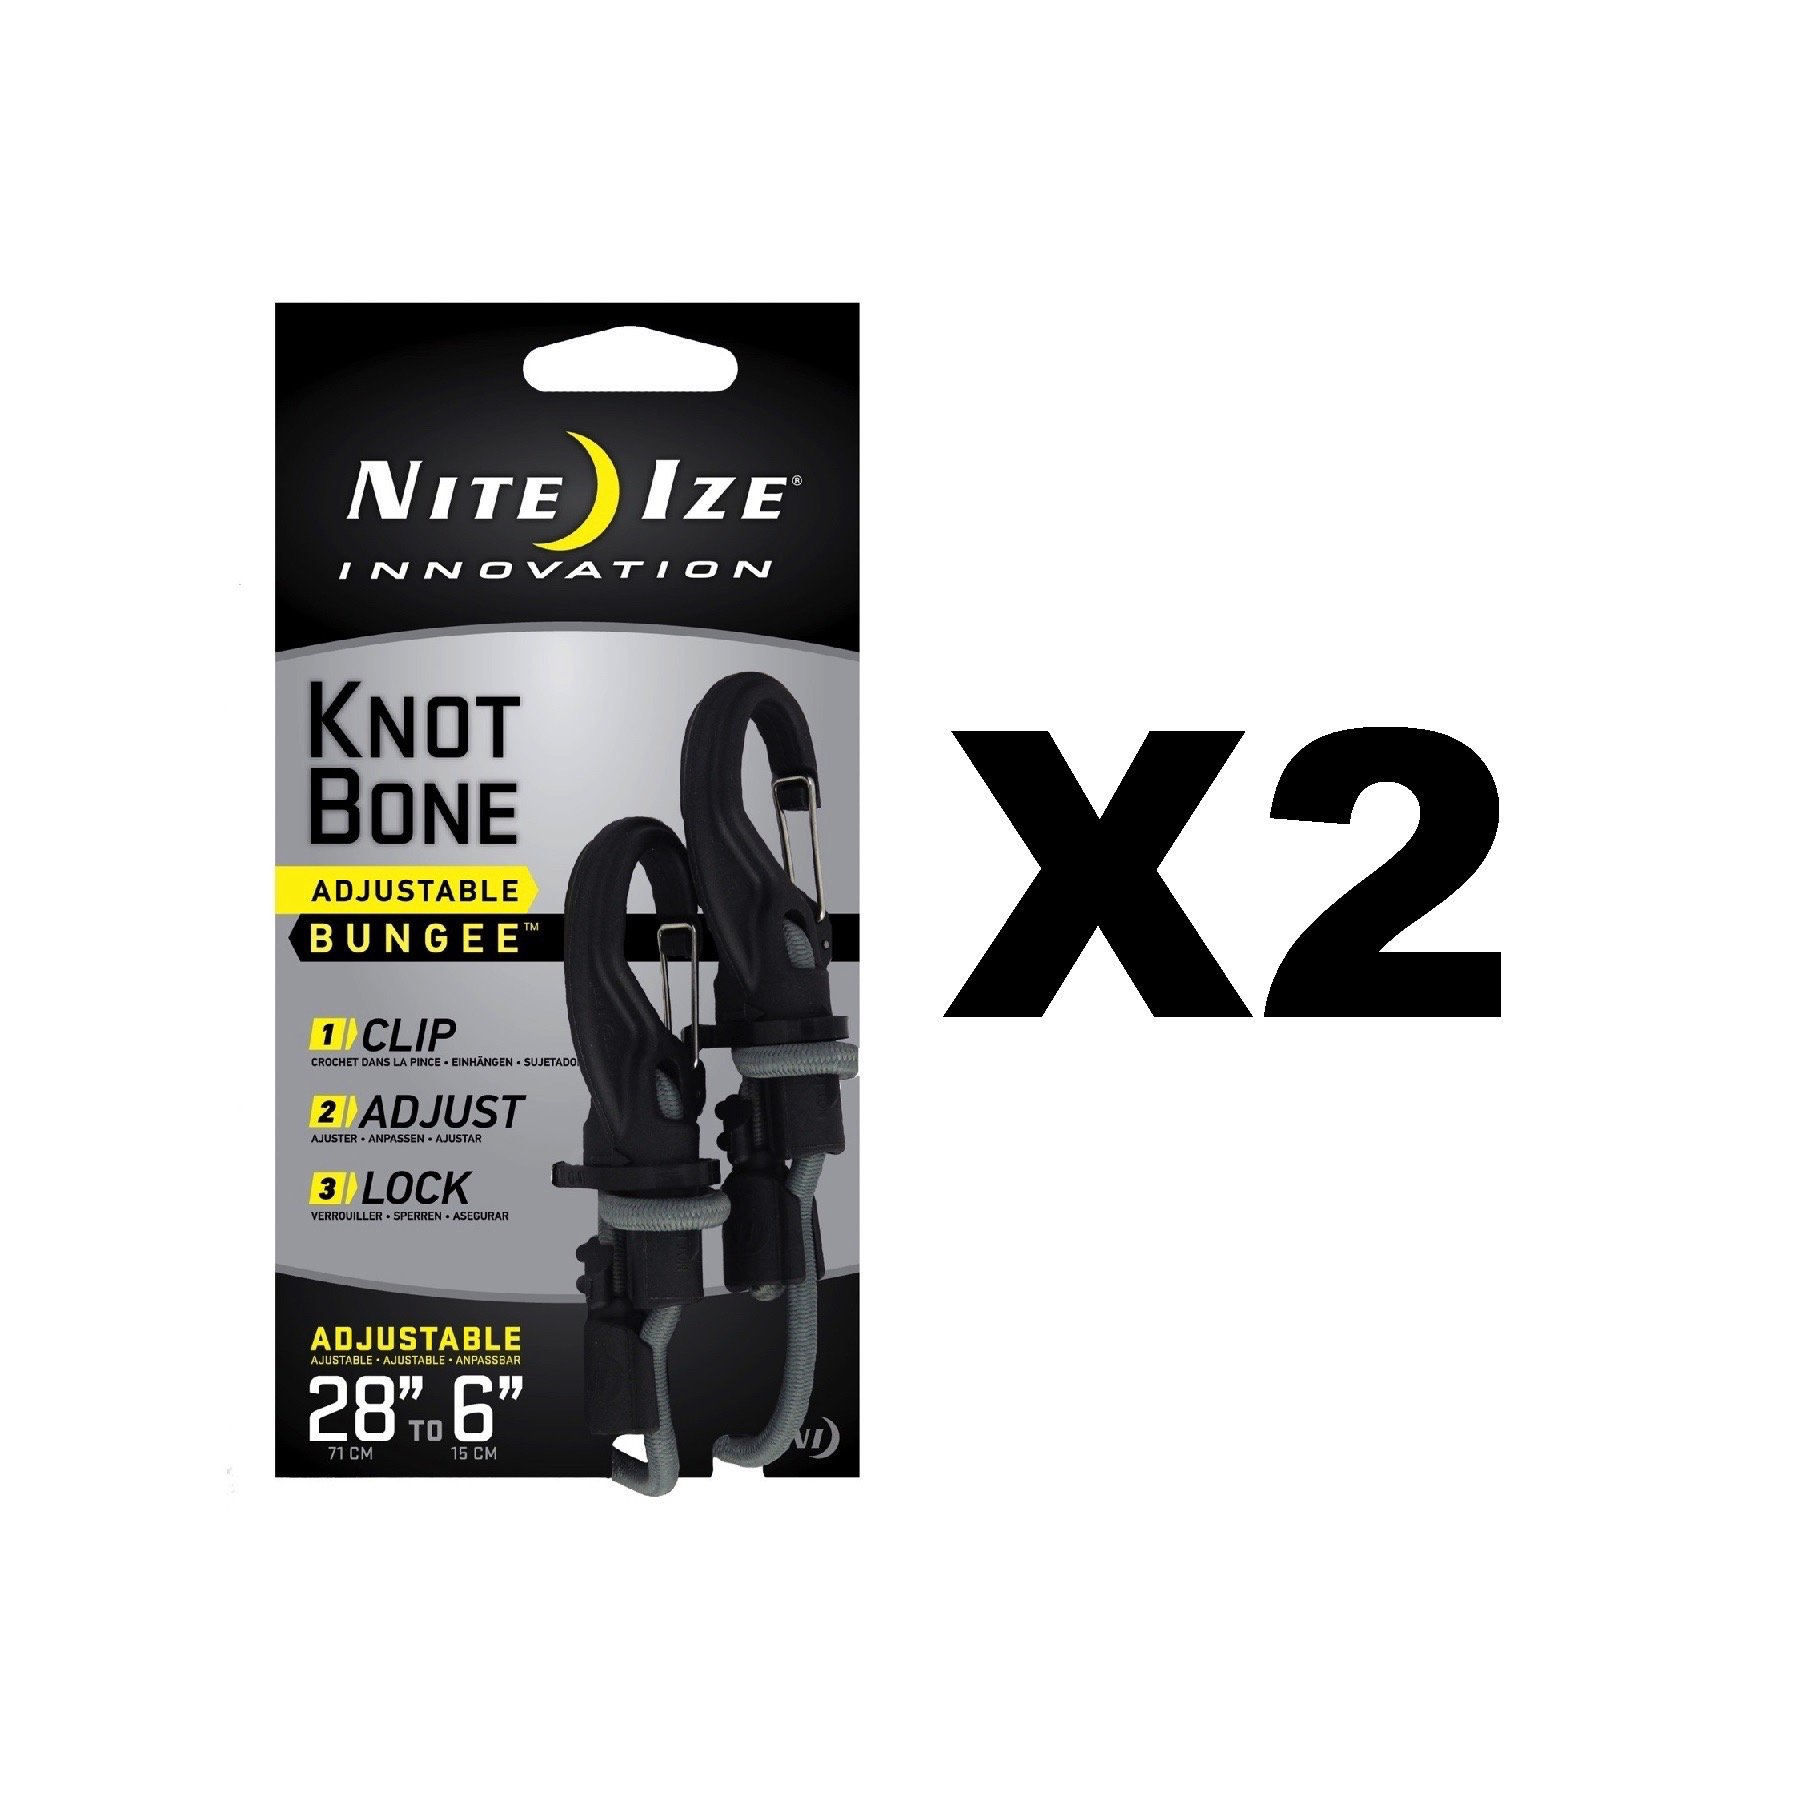 Nite Ize KnotBone Adjustable Bungee Small 5mm 6''-28'' w/ Carabiner Clip (2-Pack)